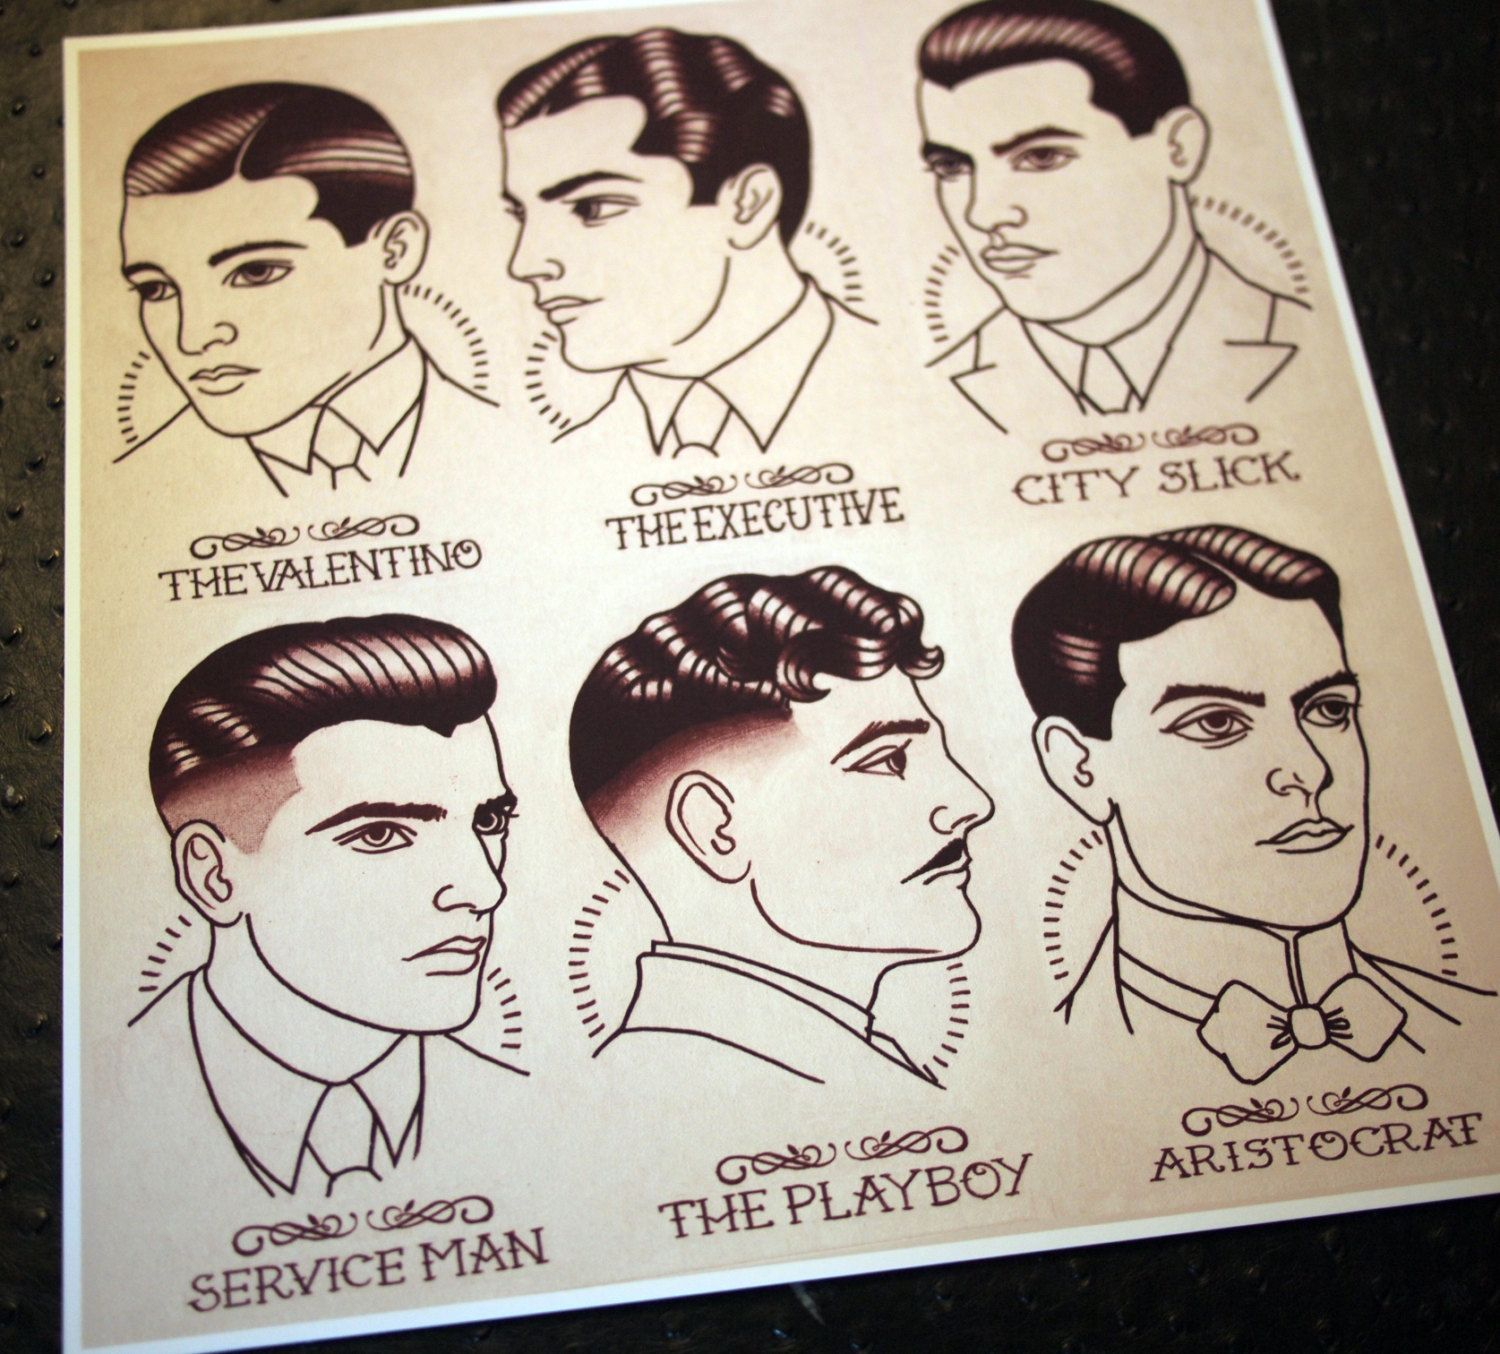 1920 S Gentlemen S Hairstyle Guide By Quyen Dinh Menshairstyles 1920s Mens Hair Hair Guide 1920s Mens Fashion